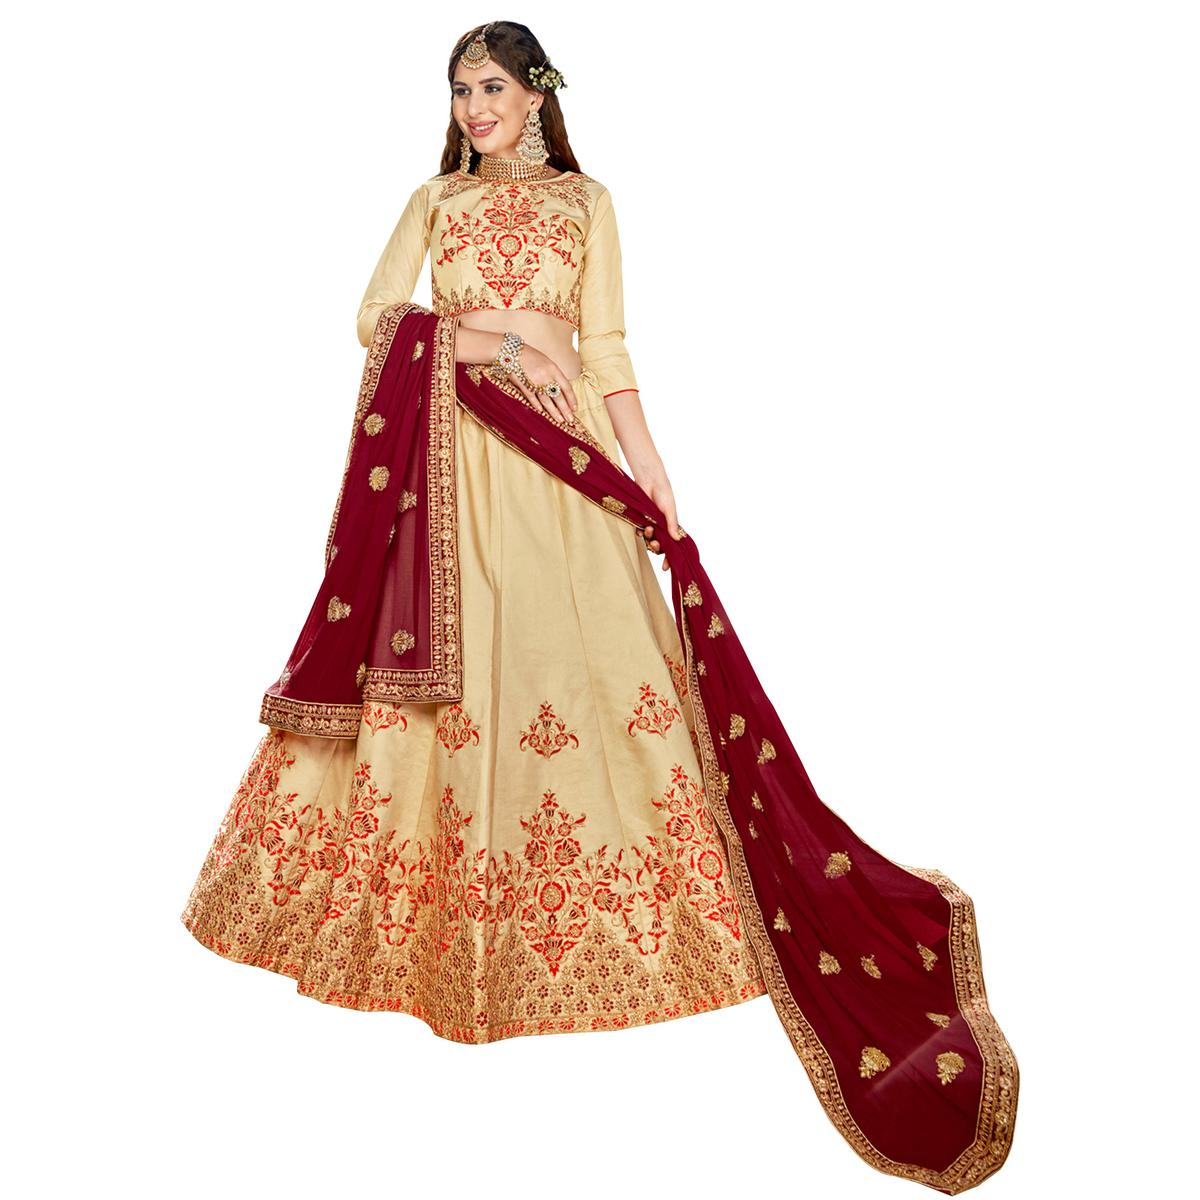 Appealing Beige Colored Partywear Embroidered Heavy Silk Lehenga Choli